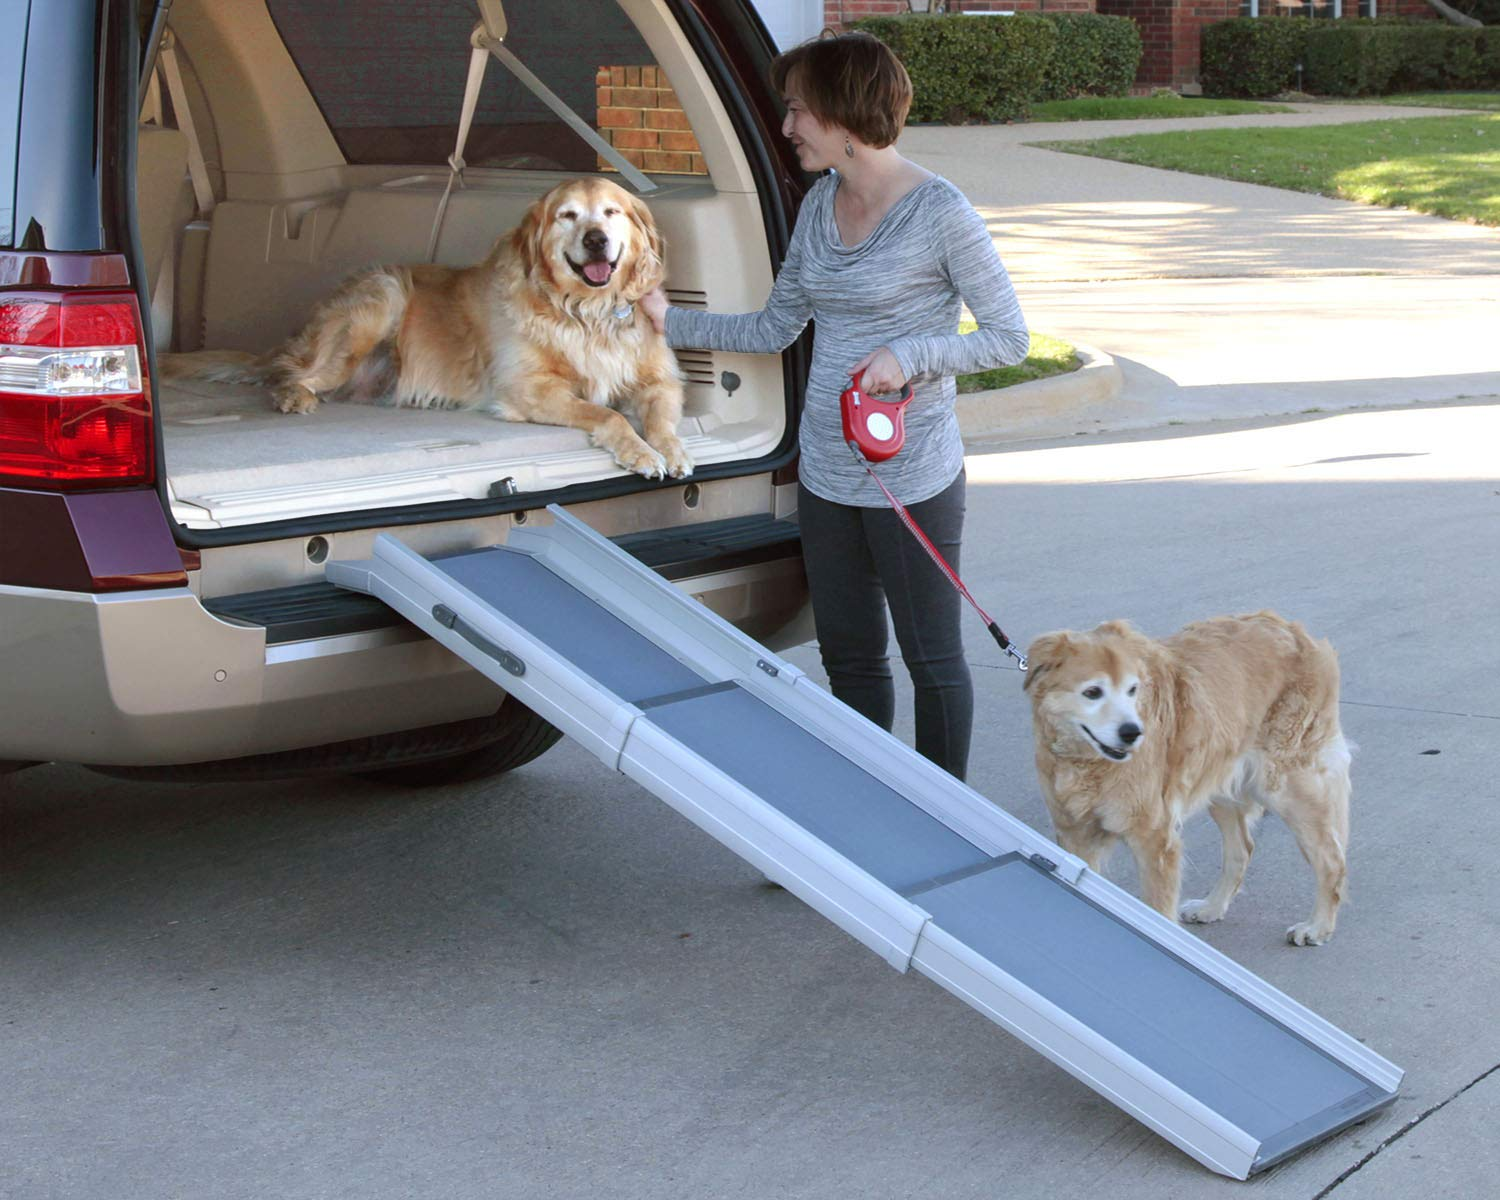 PetSafe Solvit Deluxe Tri-Scope Telescoping Pet Ramp or Carrying Case, 28 in. - 70 in., Portable Lightweight Aluminum Dog Ramp by PetSafe